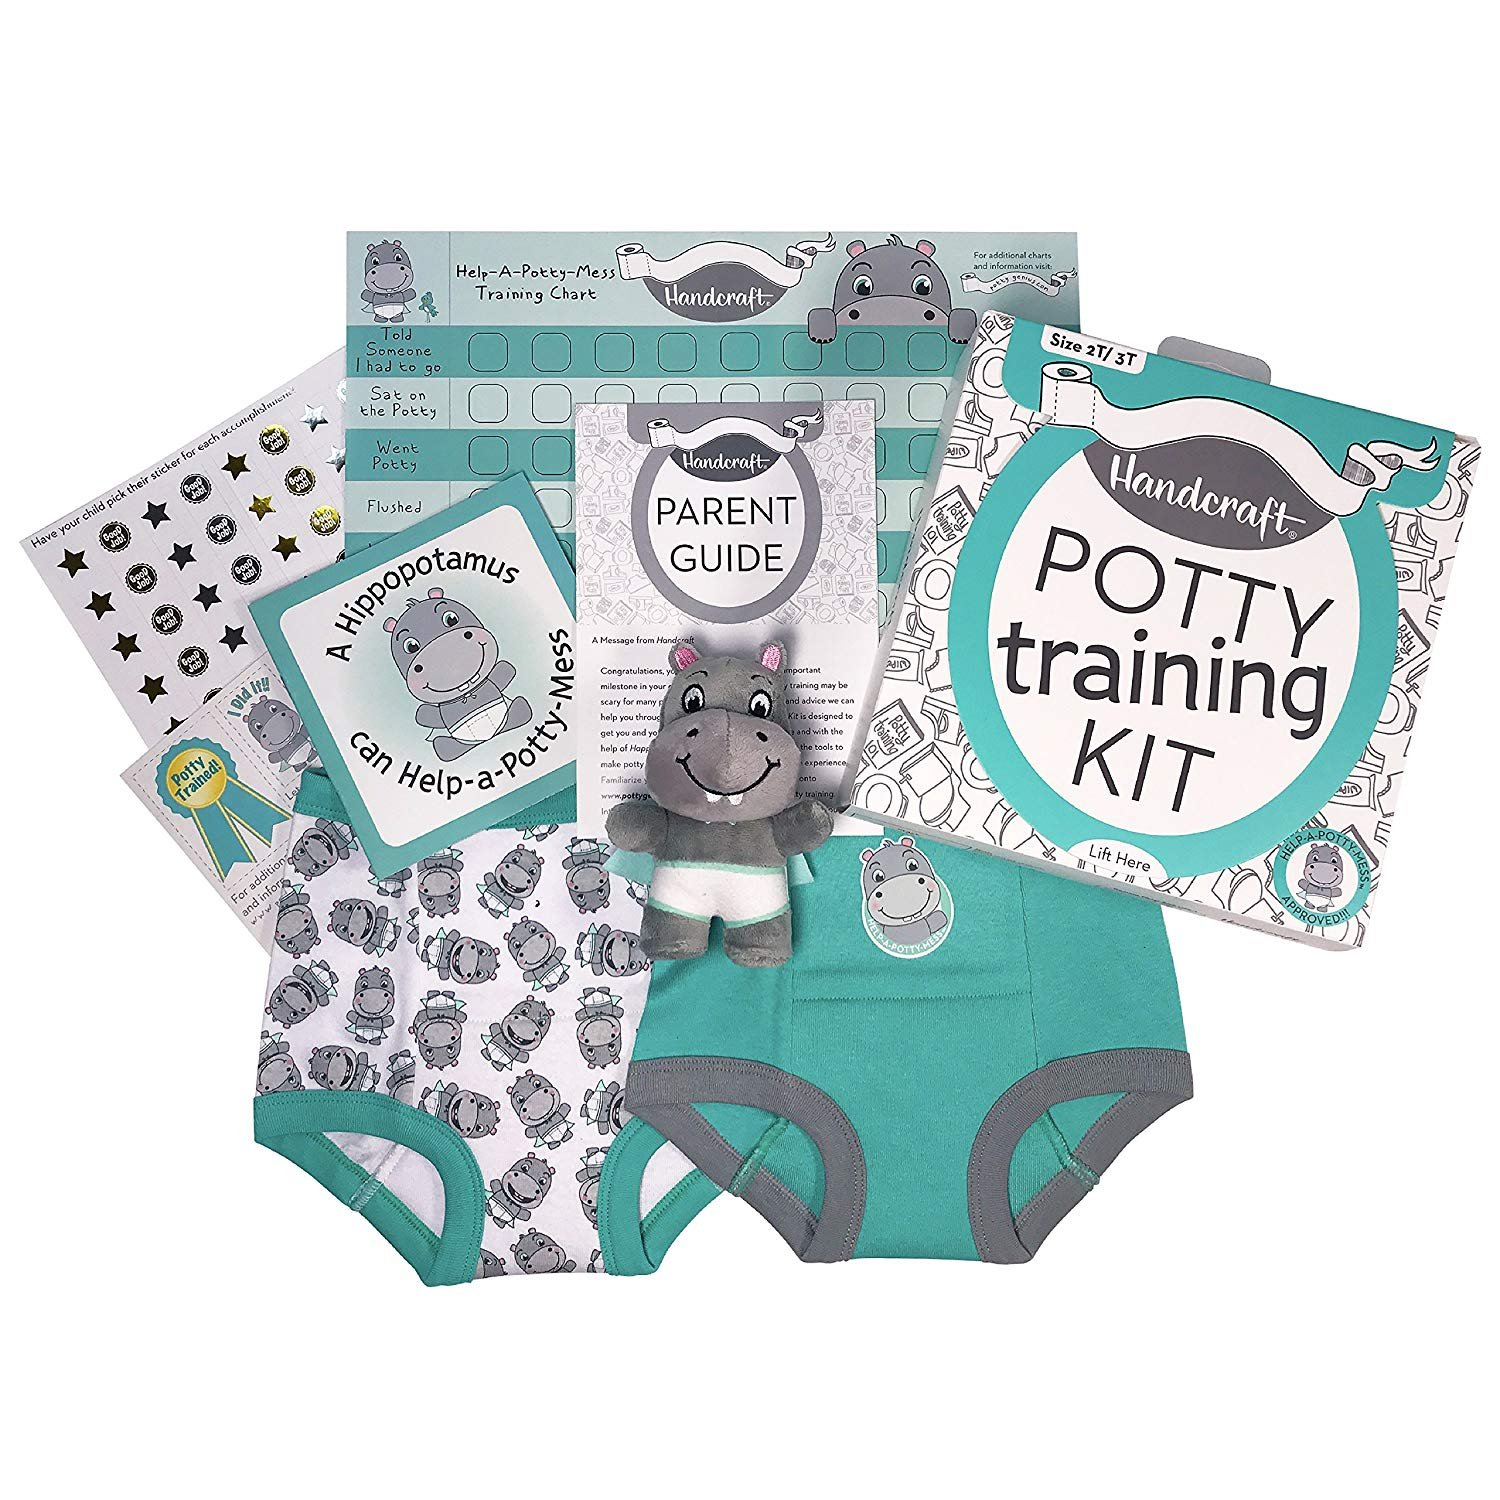 Handcraft Toddler Kids Potty Training Kit, Includes Parent Guide, Training Pants and More, Teal, Size 2T/3T